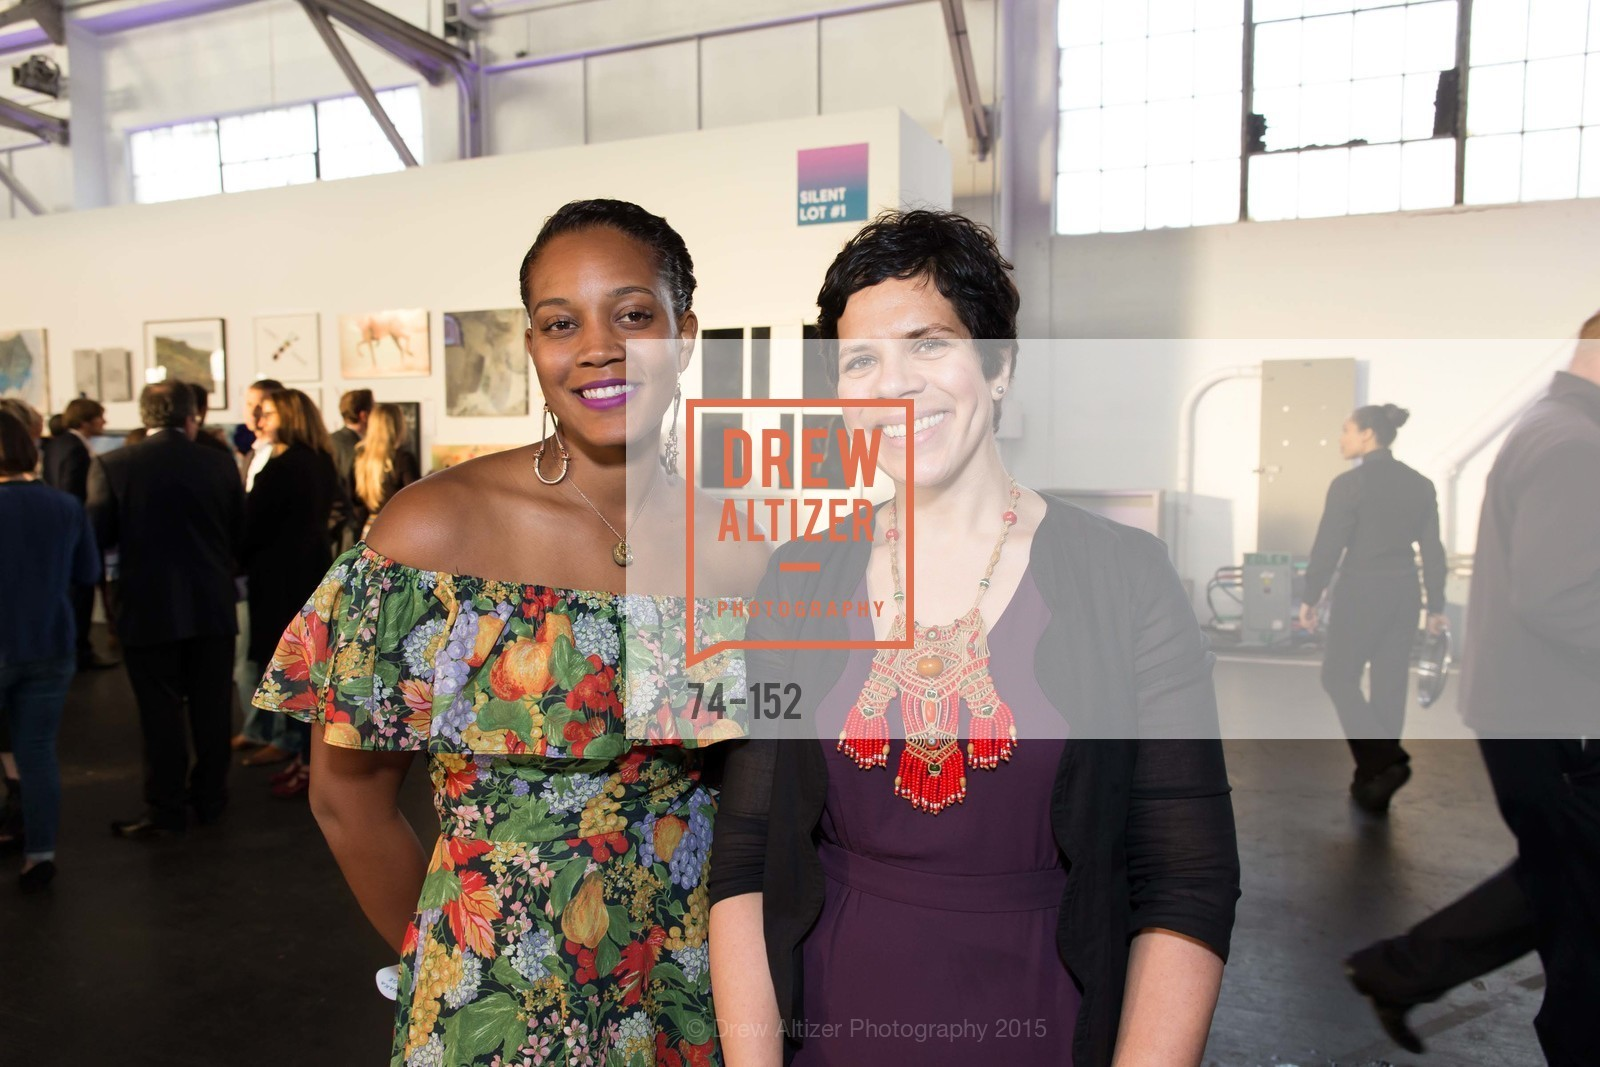 Chinaka Hodge, Amanda Ault, Headlands Center for the Arts Benefit Auction, Fort Mason Festival, Pavilon, June 2nd, 2015,Drew Altizer, Drew Altizer Photography, full-service agency, private events, San Francisco photographer, photographer california